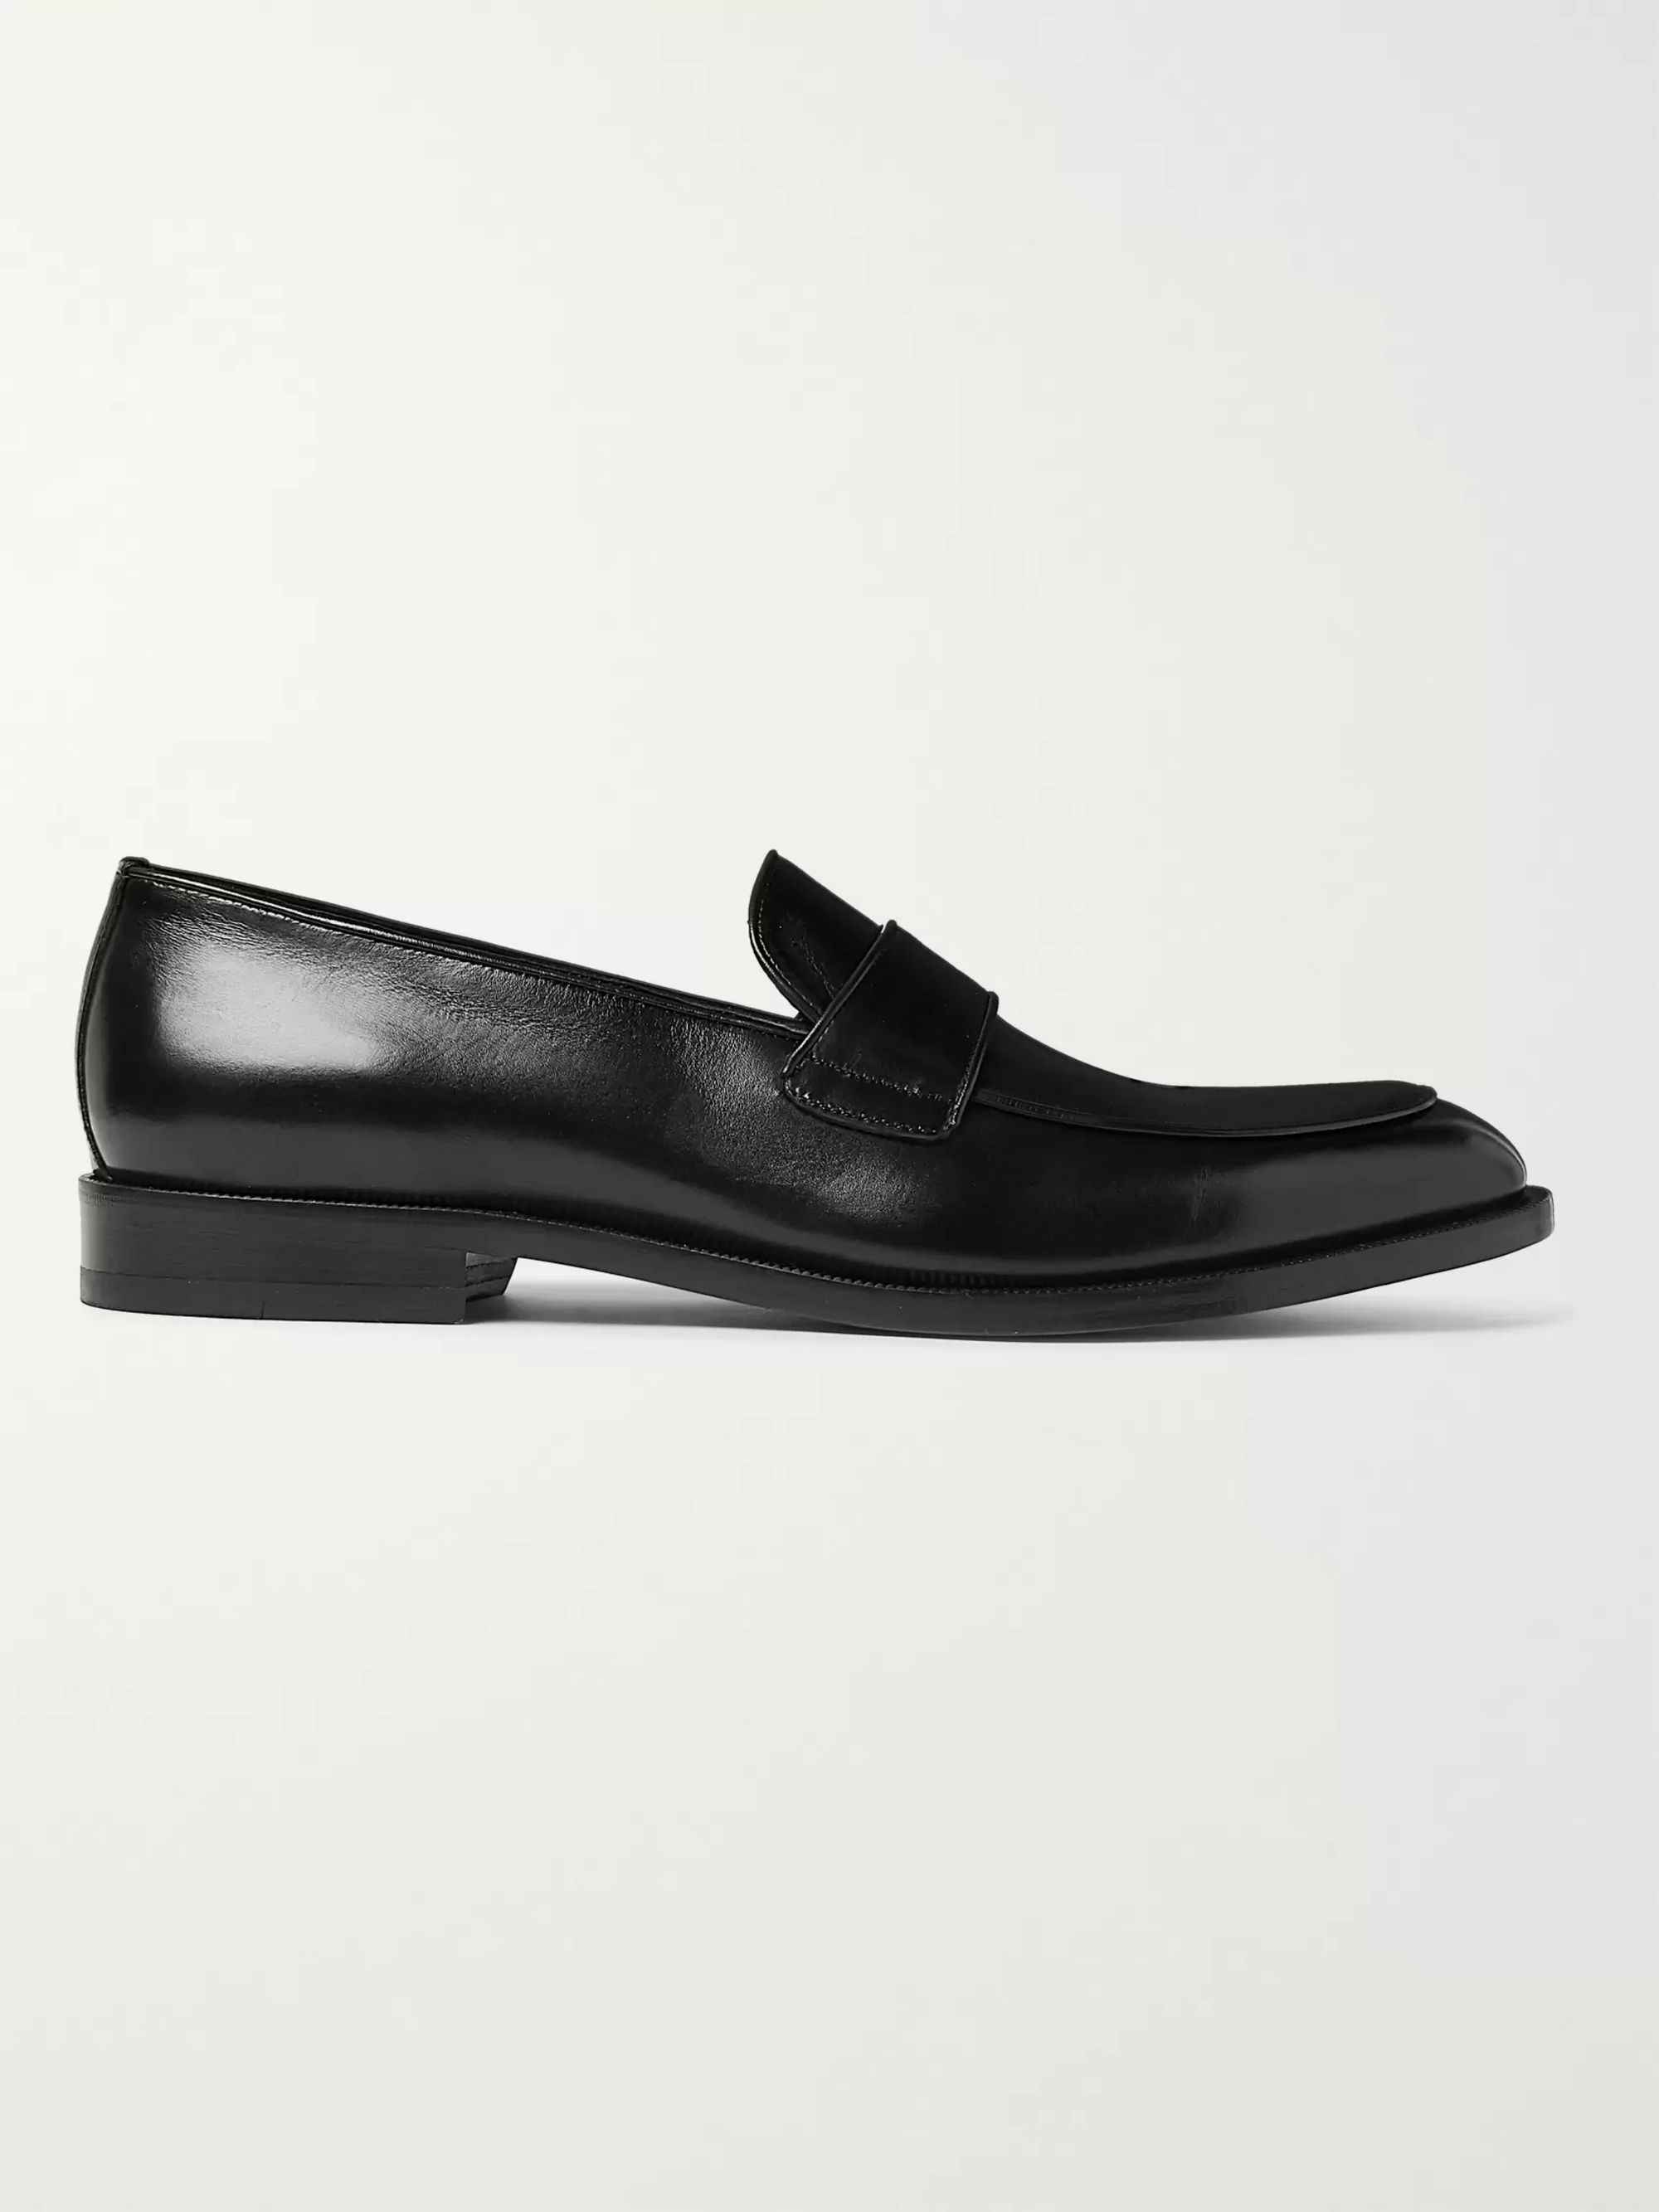 Canali Leather Penny Loafers